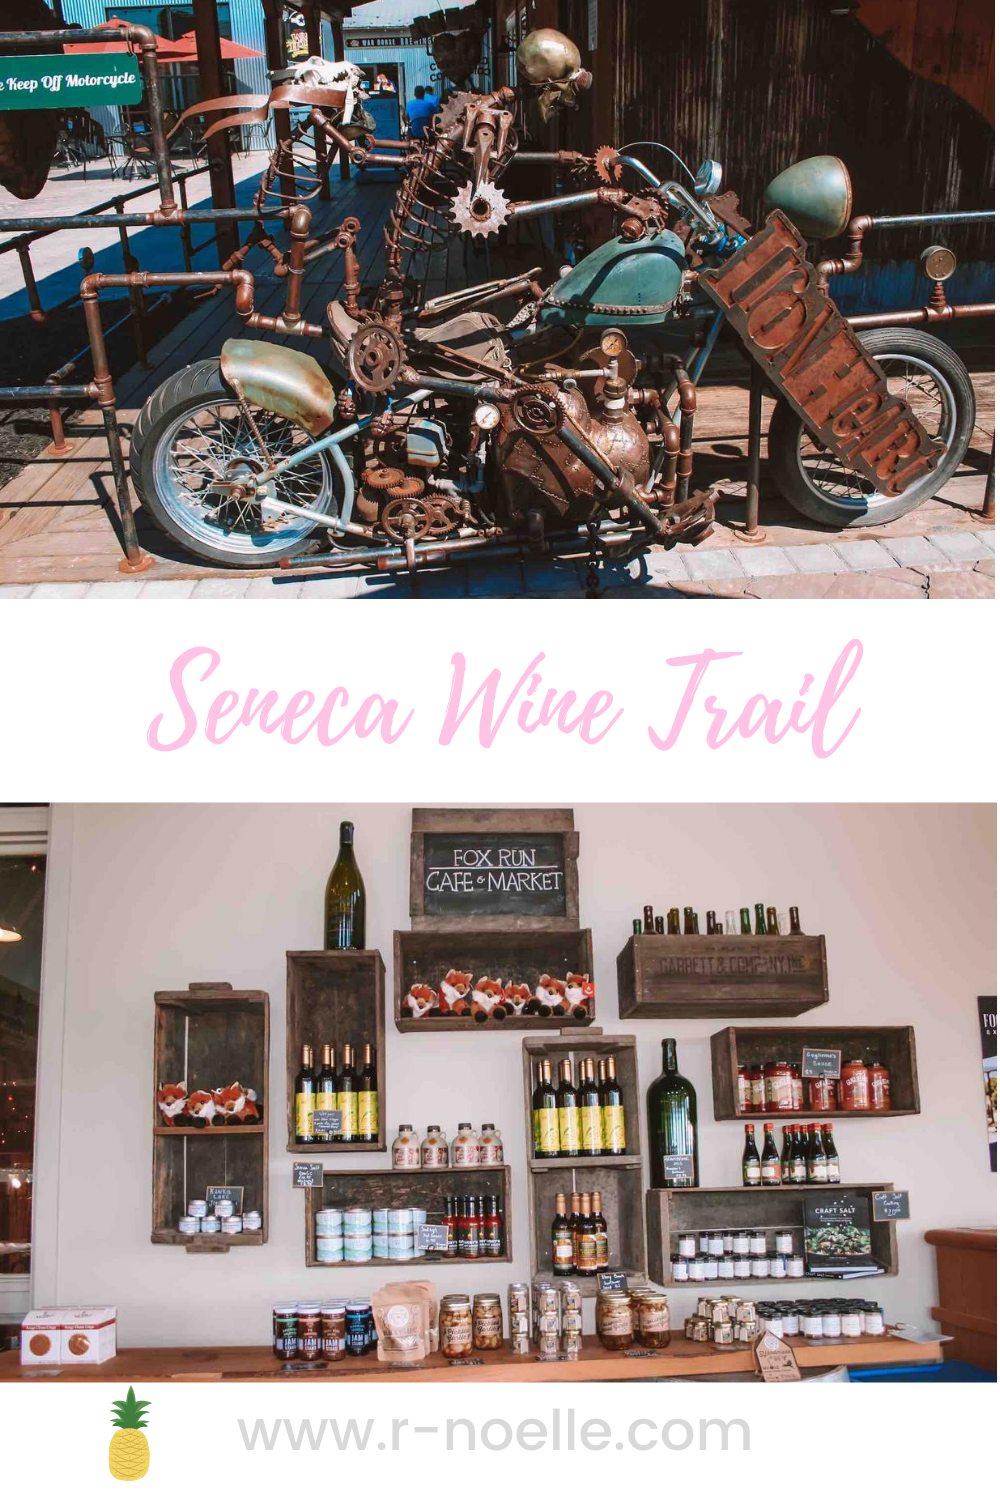 Seneca Wine Trail take you around Seneca lake which is the deepest lake of all the Finger Lakes. You can go to amazing wineries, try their Rieslings! It is what they are known for. Your New York Wineries experience will not be the same.